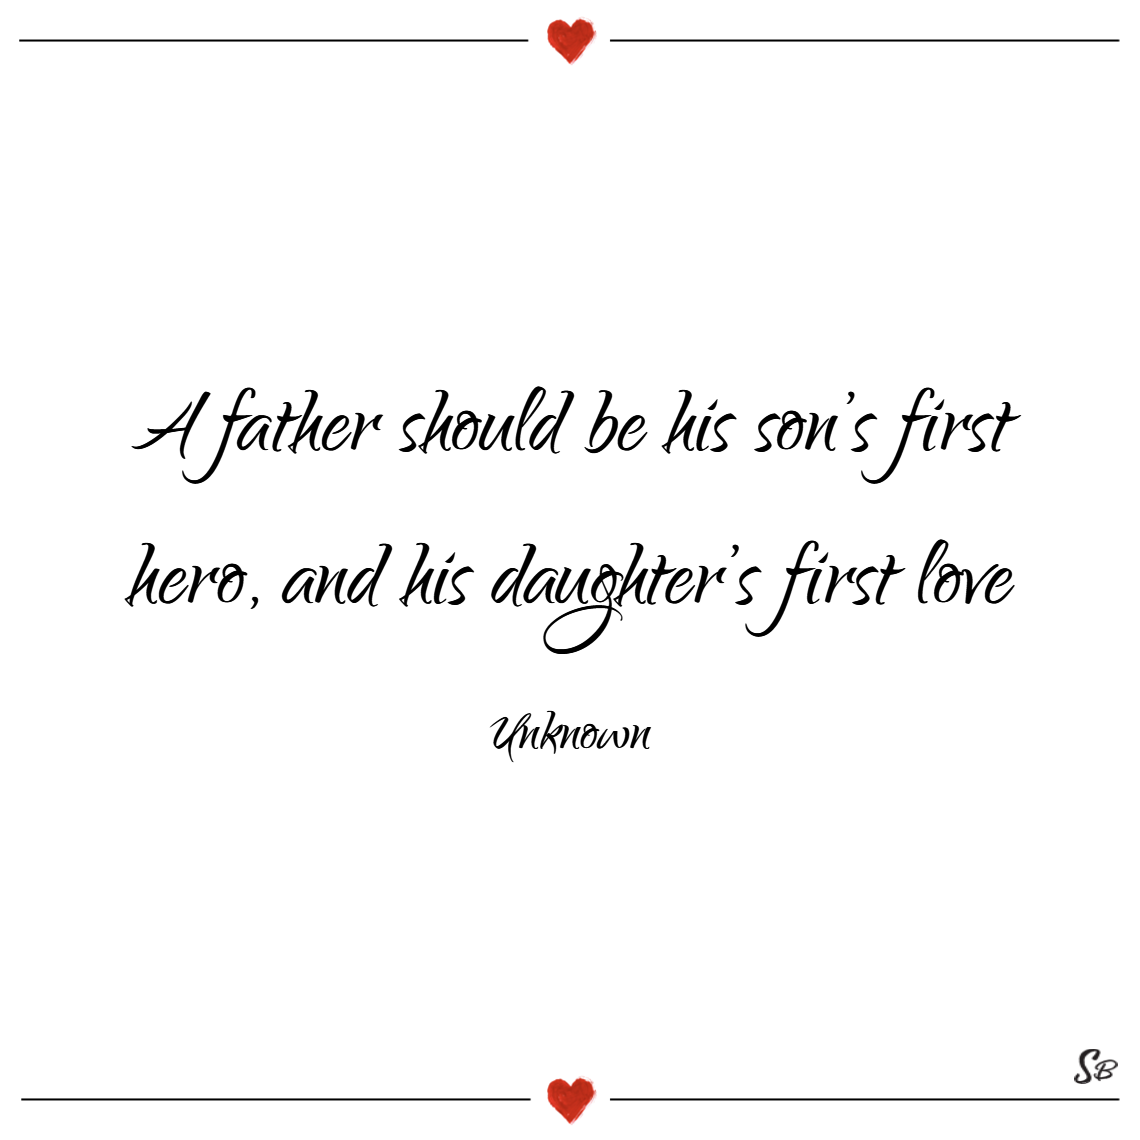 A father should be his son's first hero, and his daughter's first love. – unknown